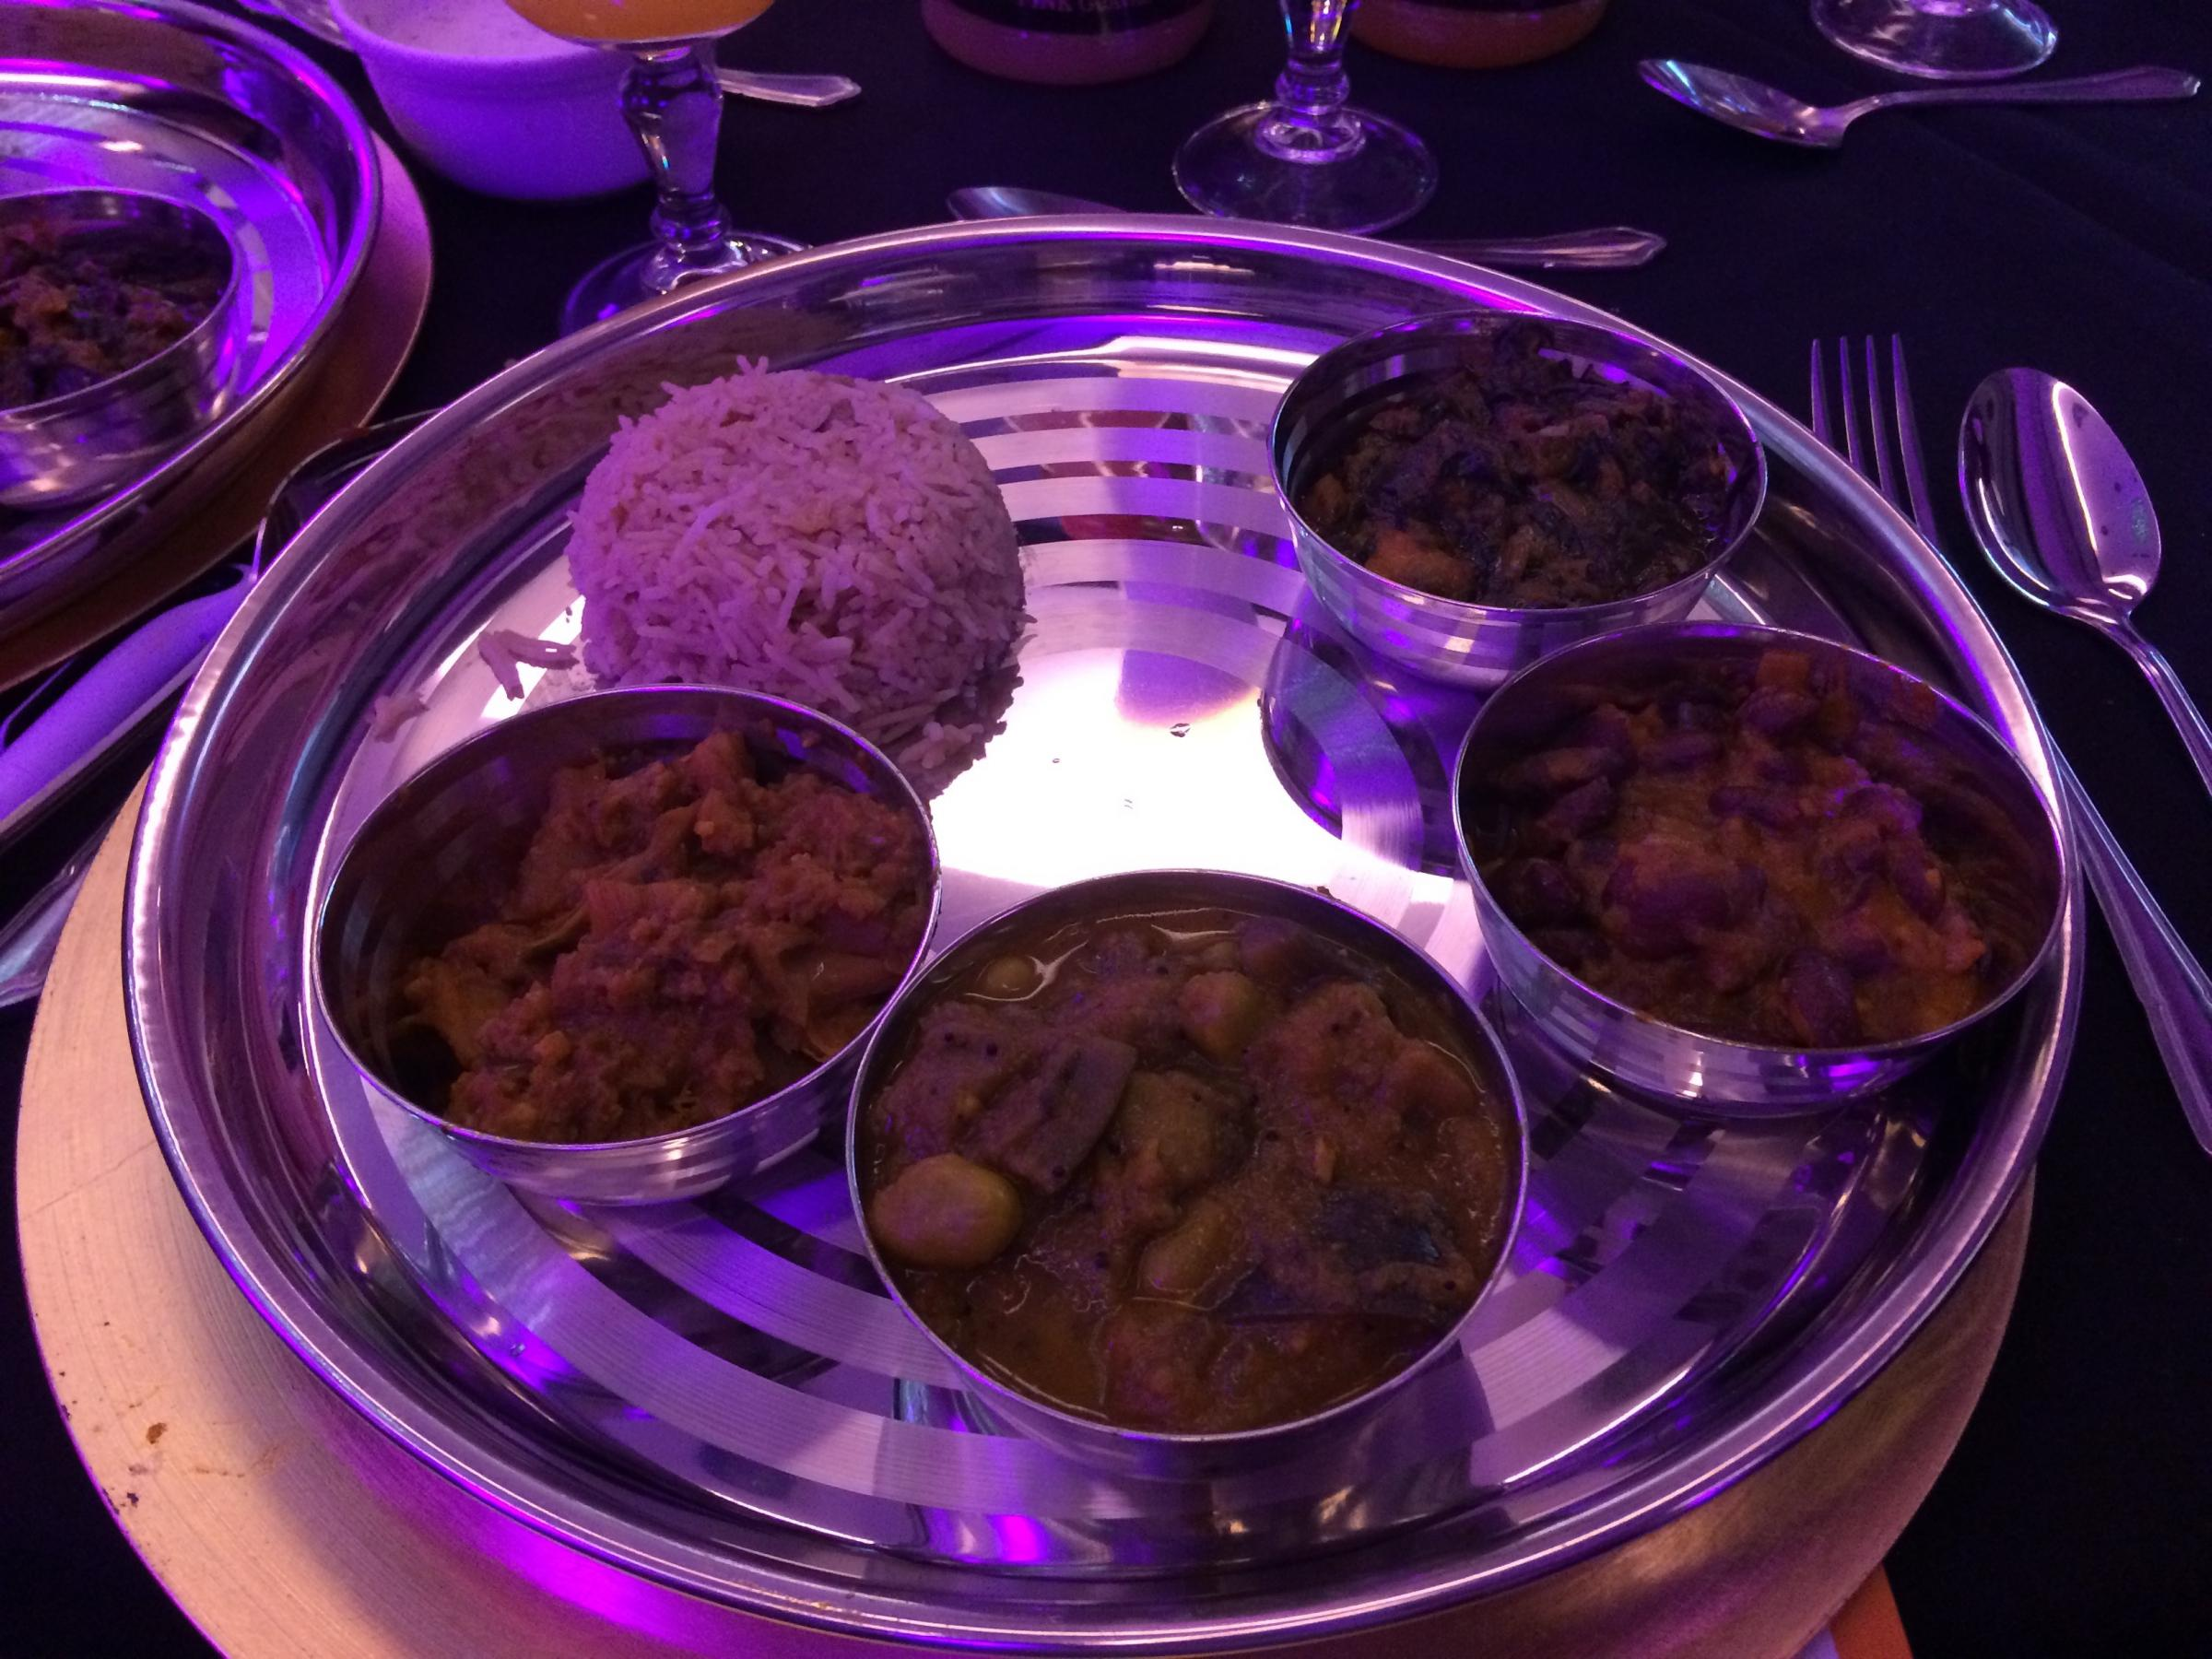 Failed to tikka the top prizes at curry awards